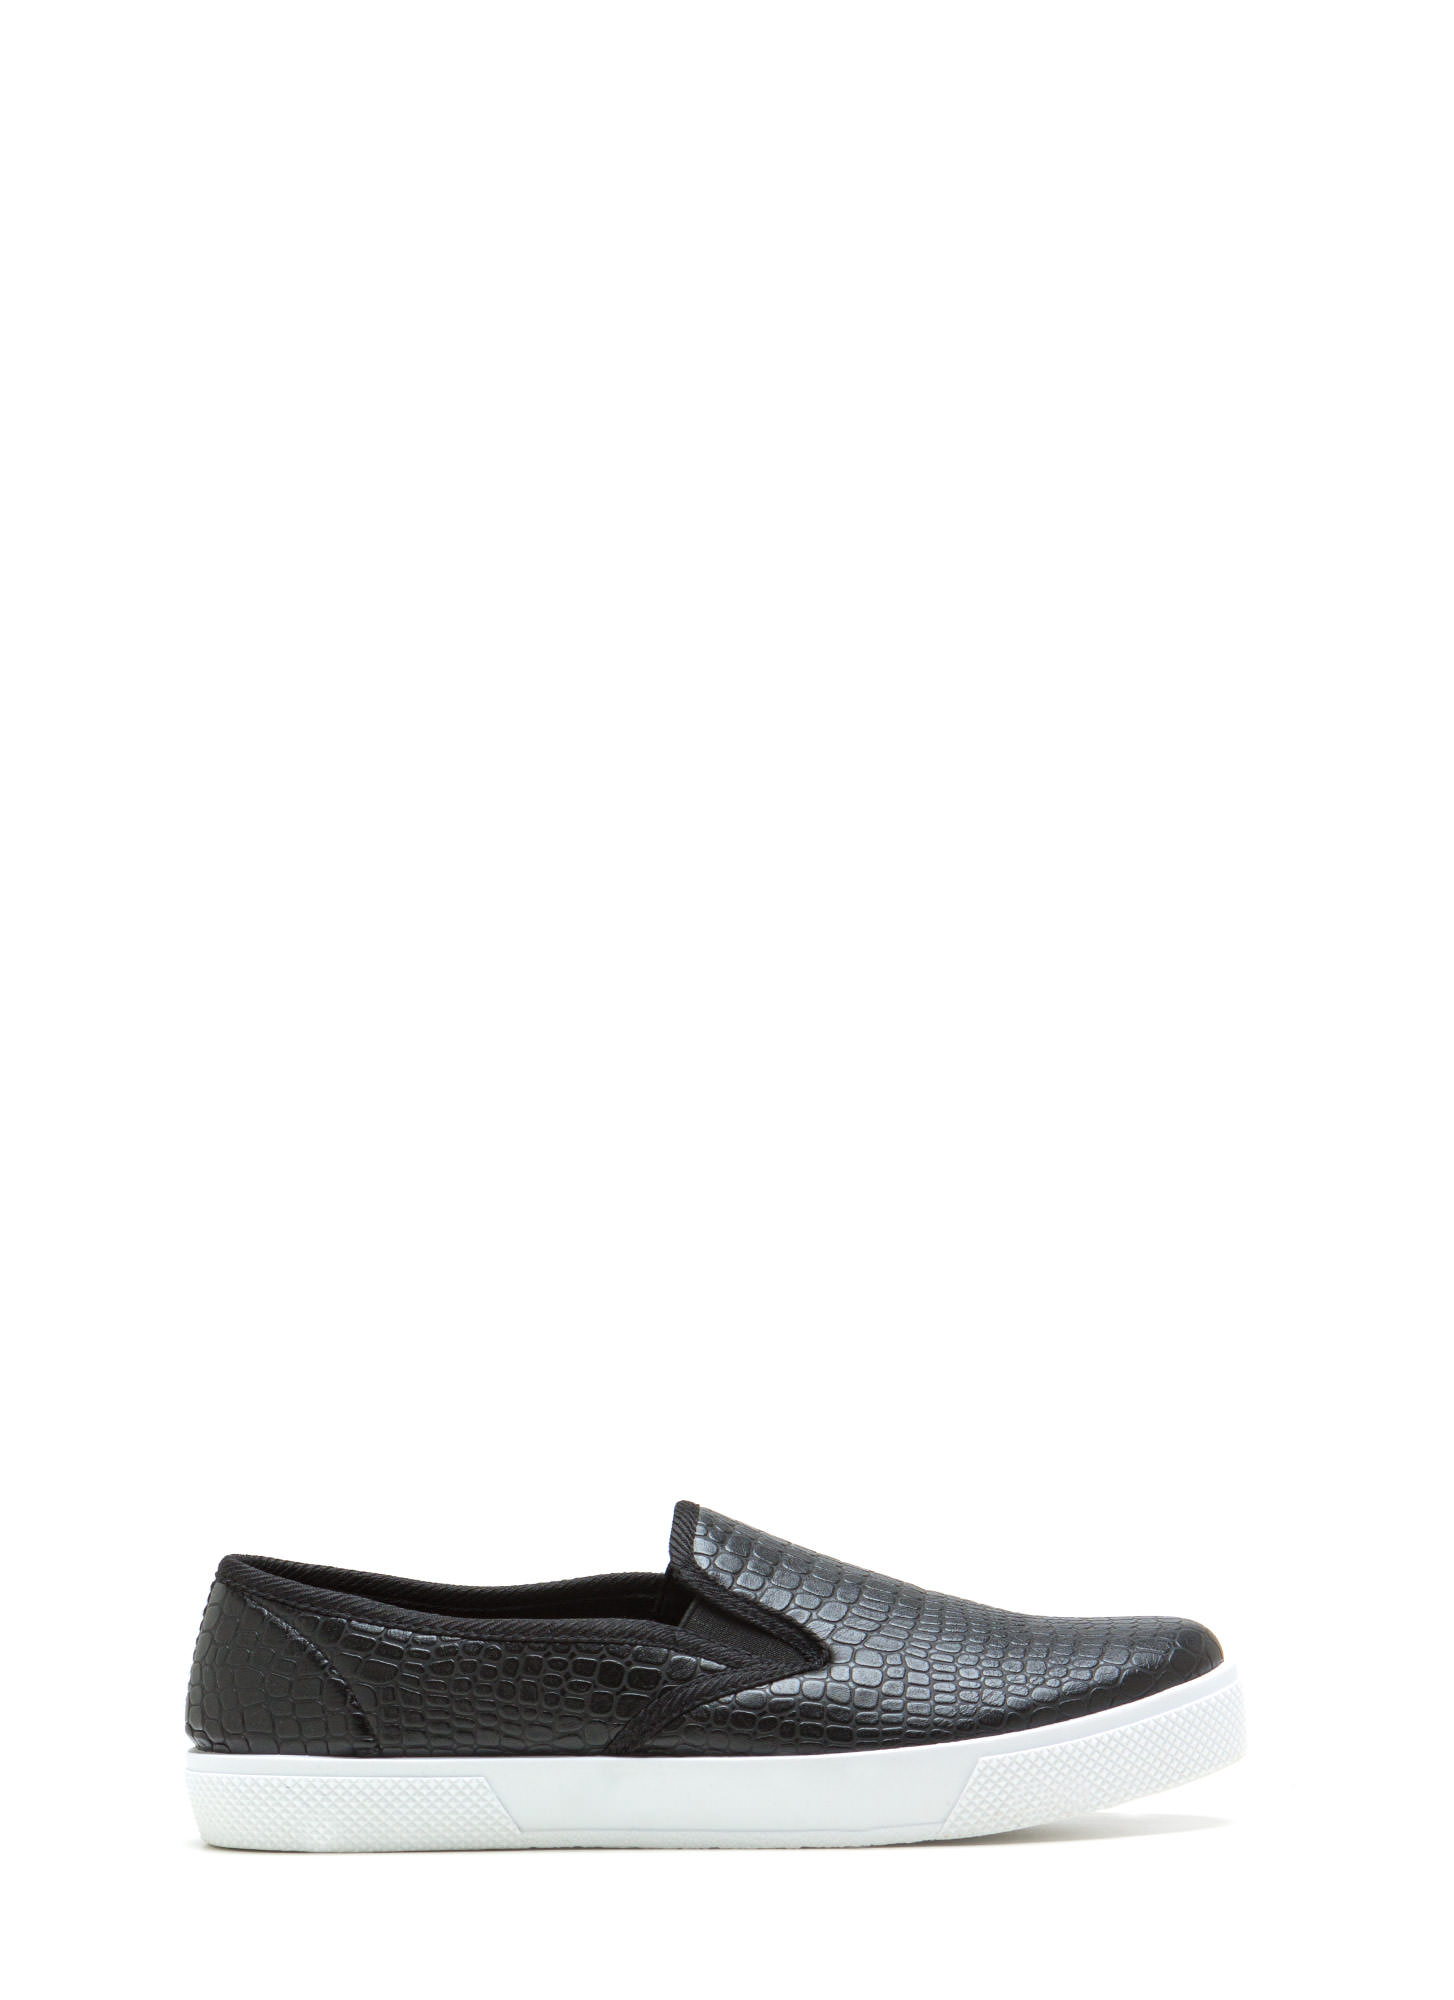 Come Slither Scaled Slip-On Sneakers BLACK